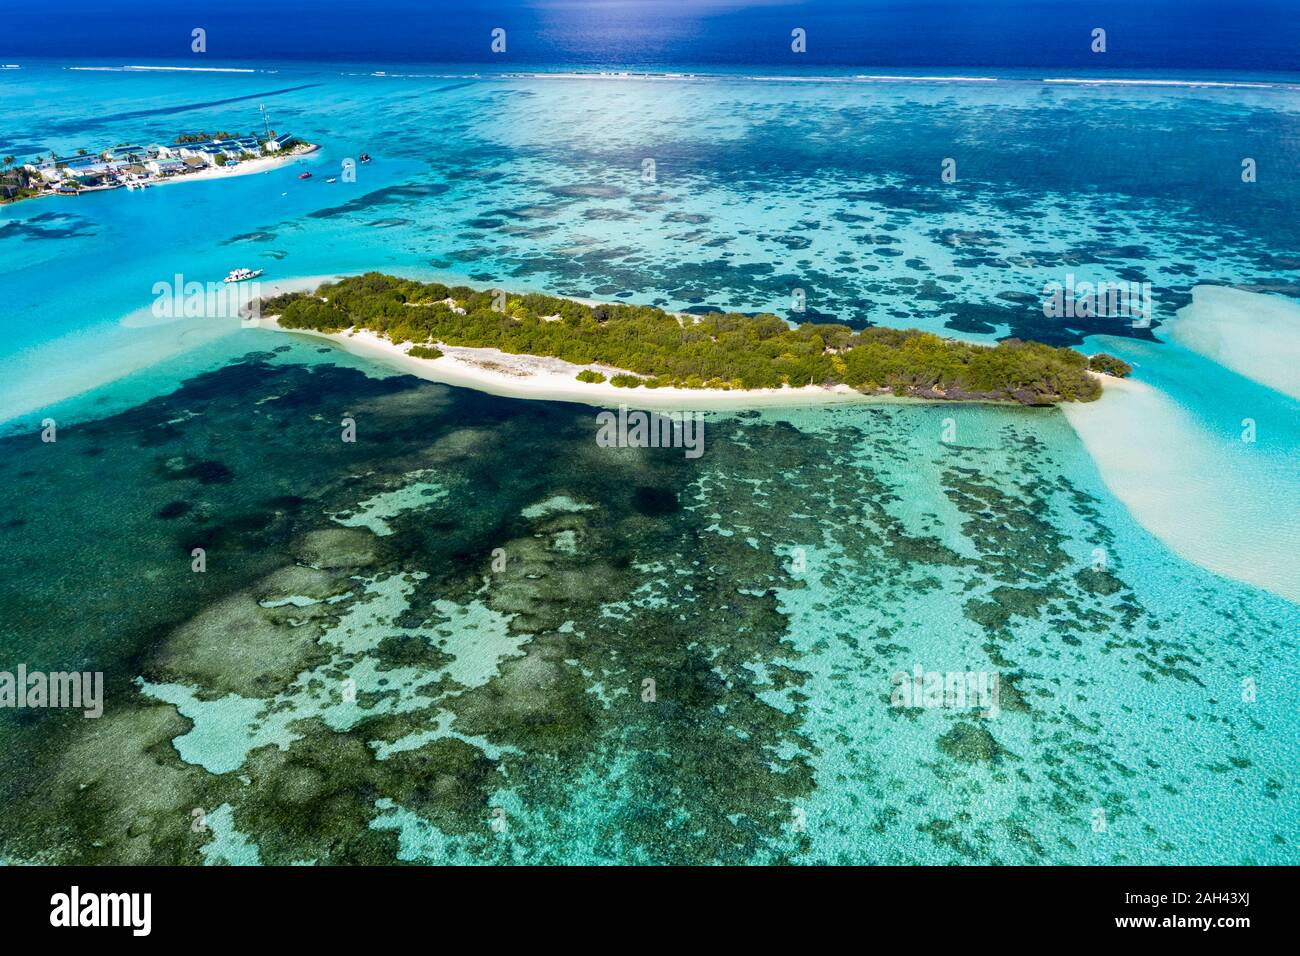 Maldives, South Male Atoll, Kaafu Atoll, Aerial view of small island and reef Stock Photo